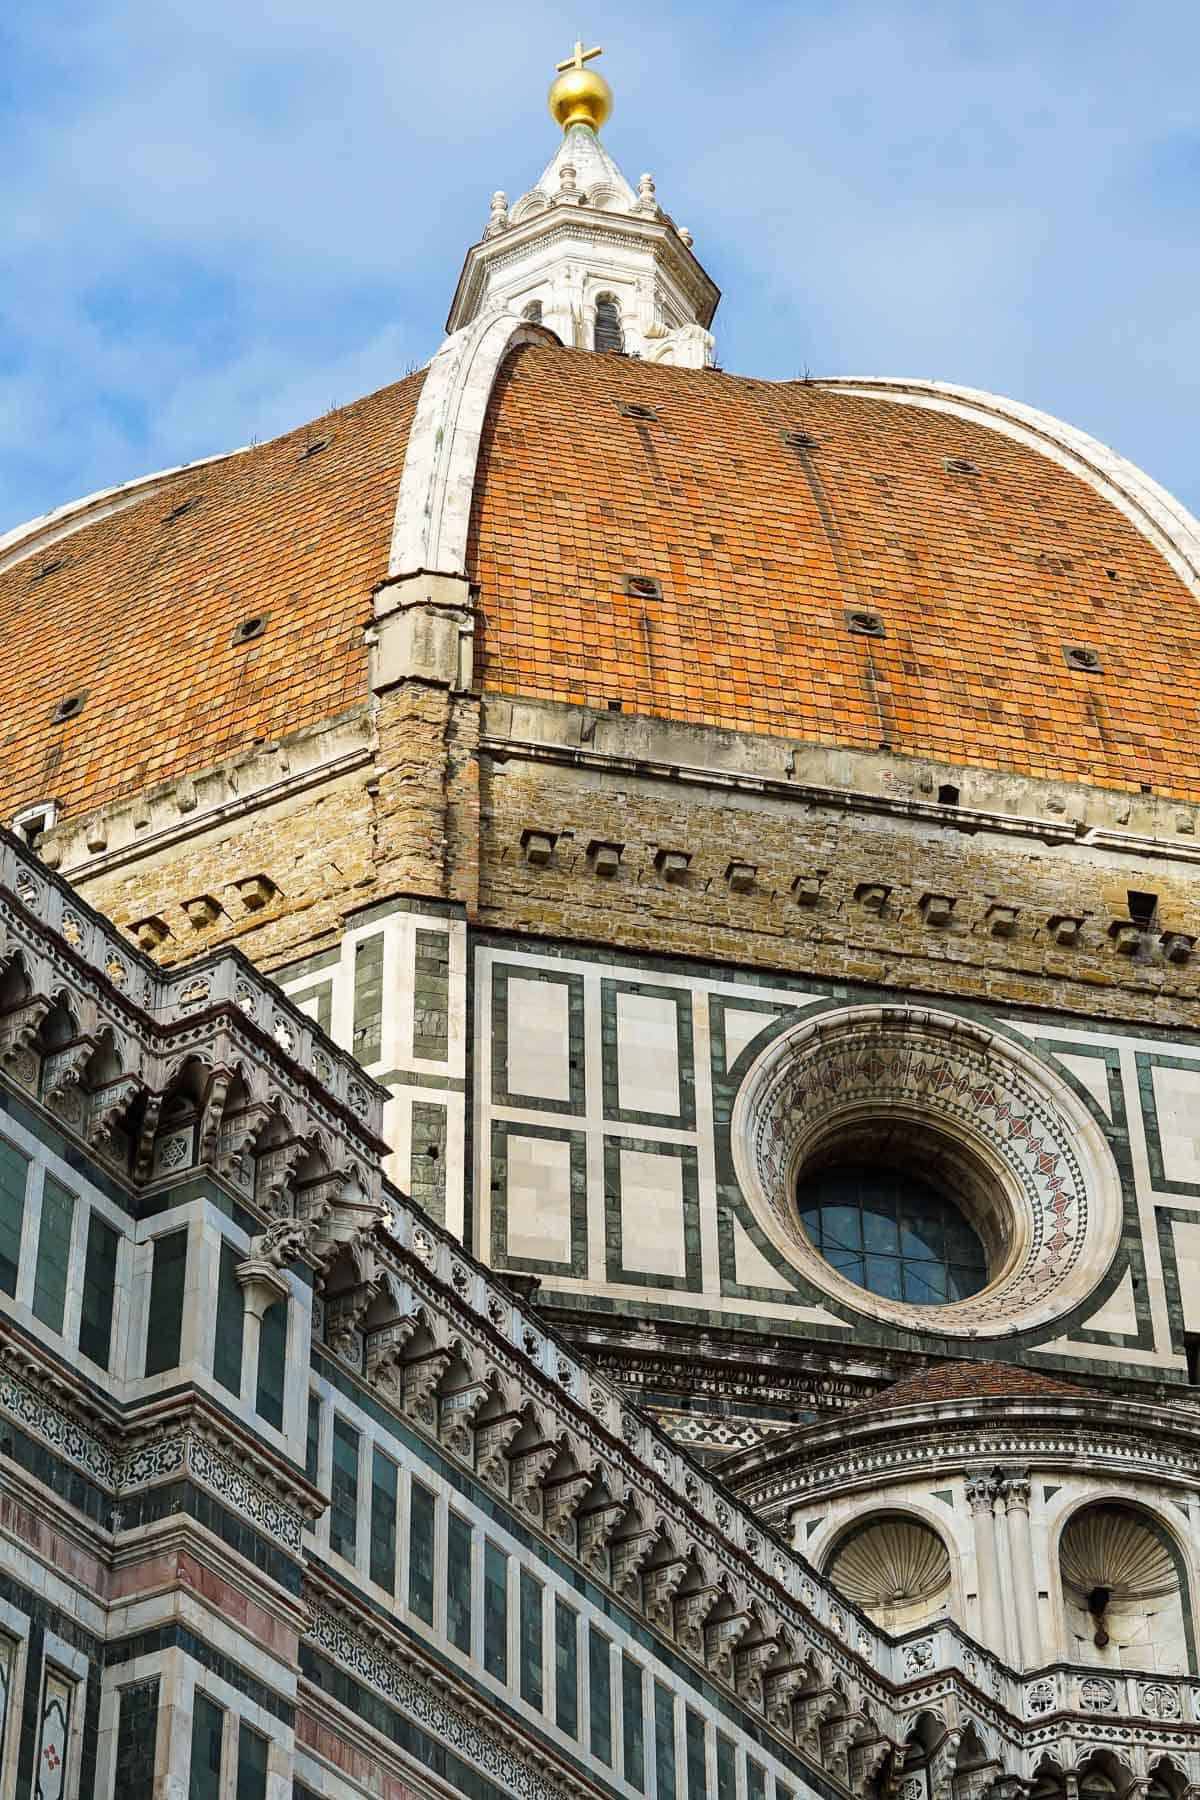 Best of Florence Trip Guide! The top sites, the best Florence restaurants, gelato, pizza, and more! An essential for planning the perfect Florence Italy Itinerary.